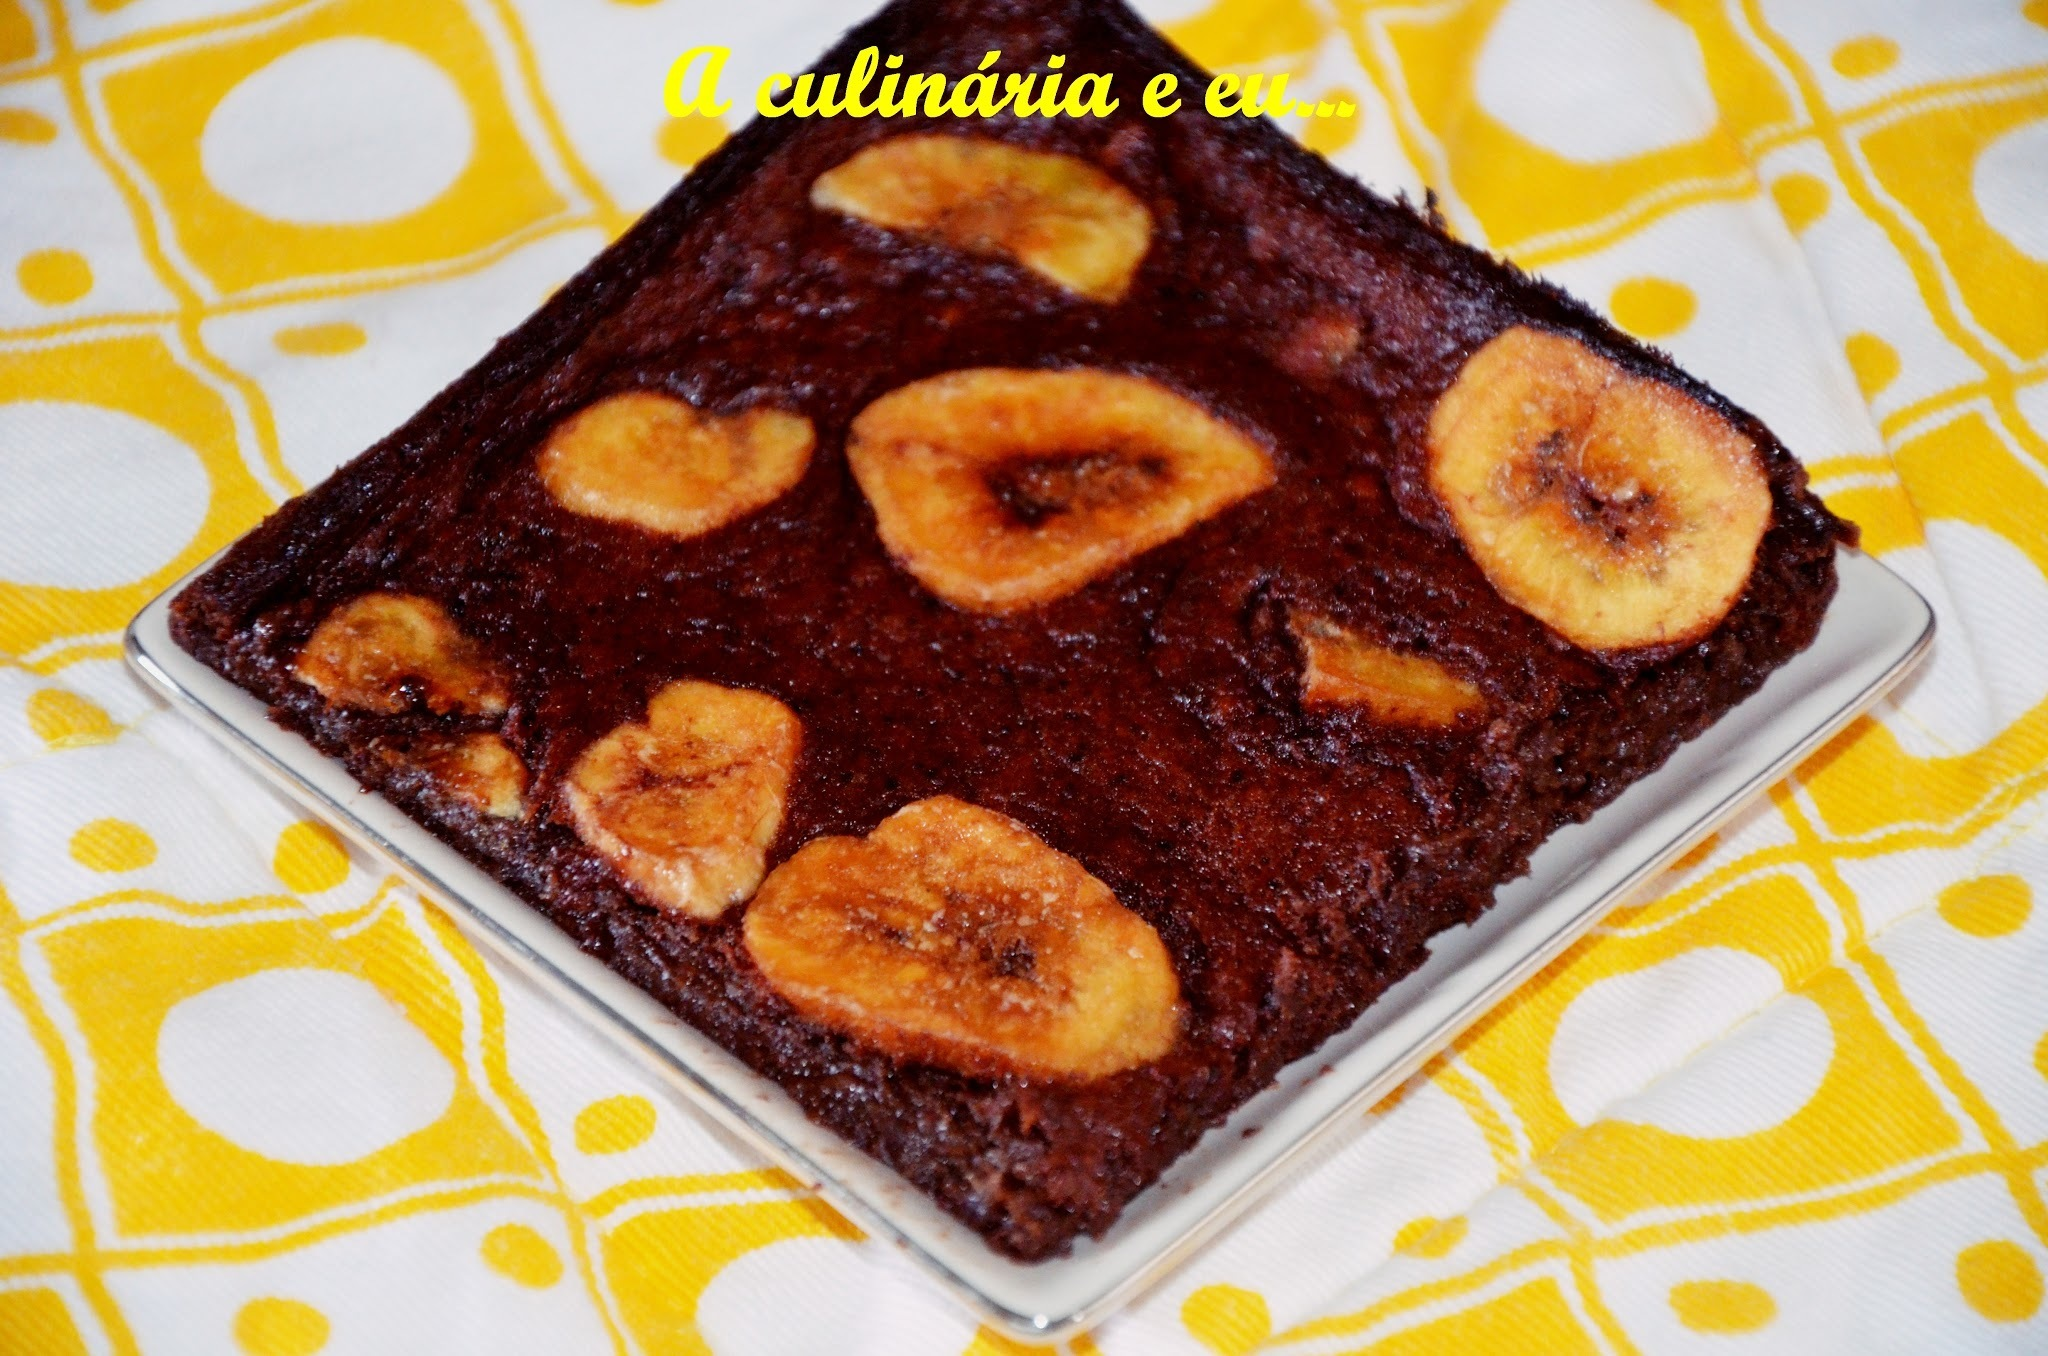 Brownie de 3 ingredientes [Sem gluten /Sem lactose]